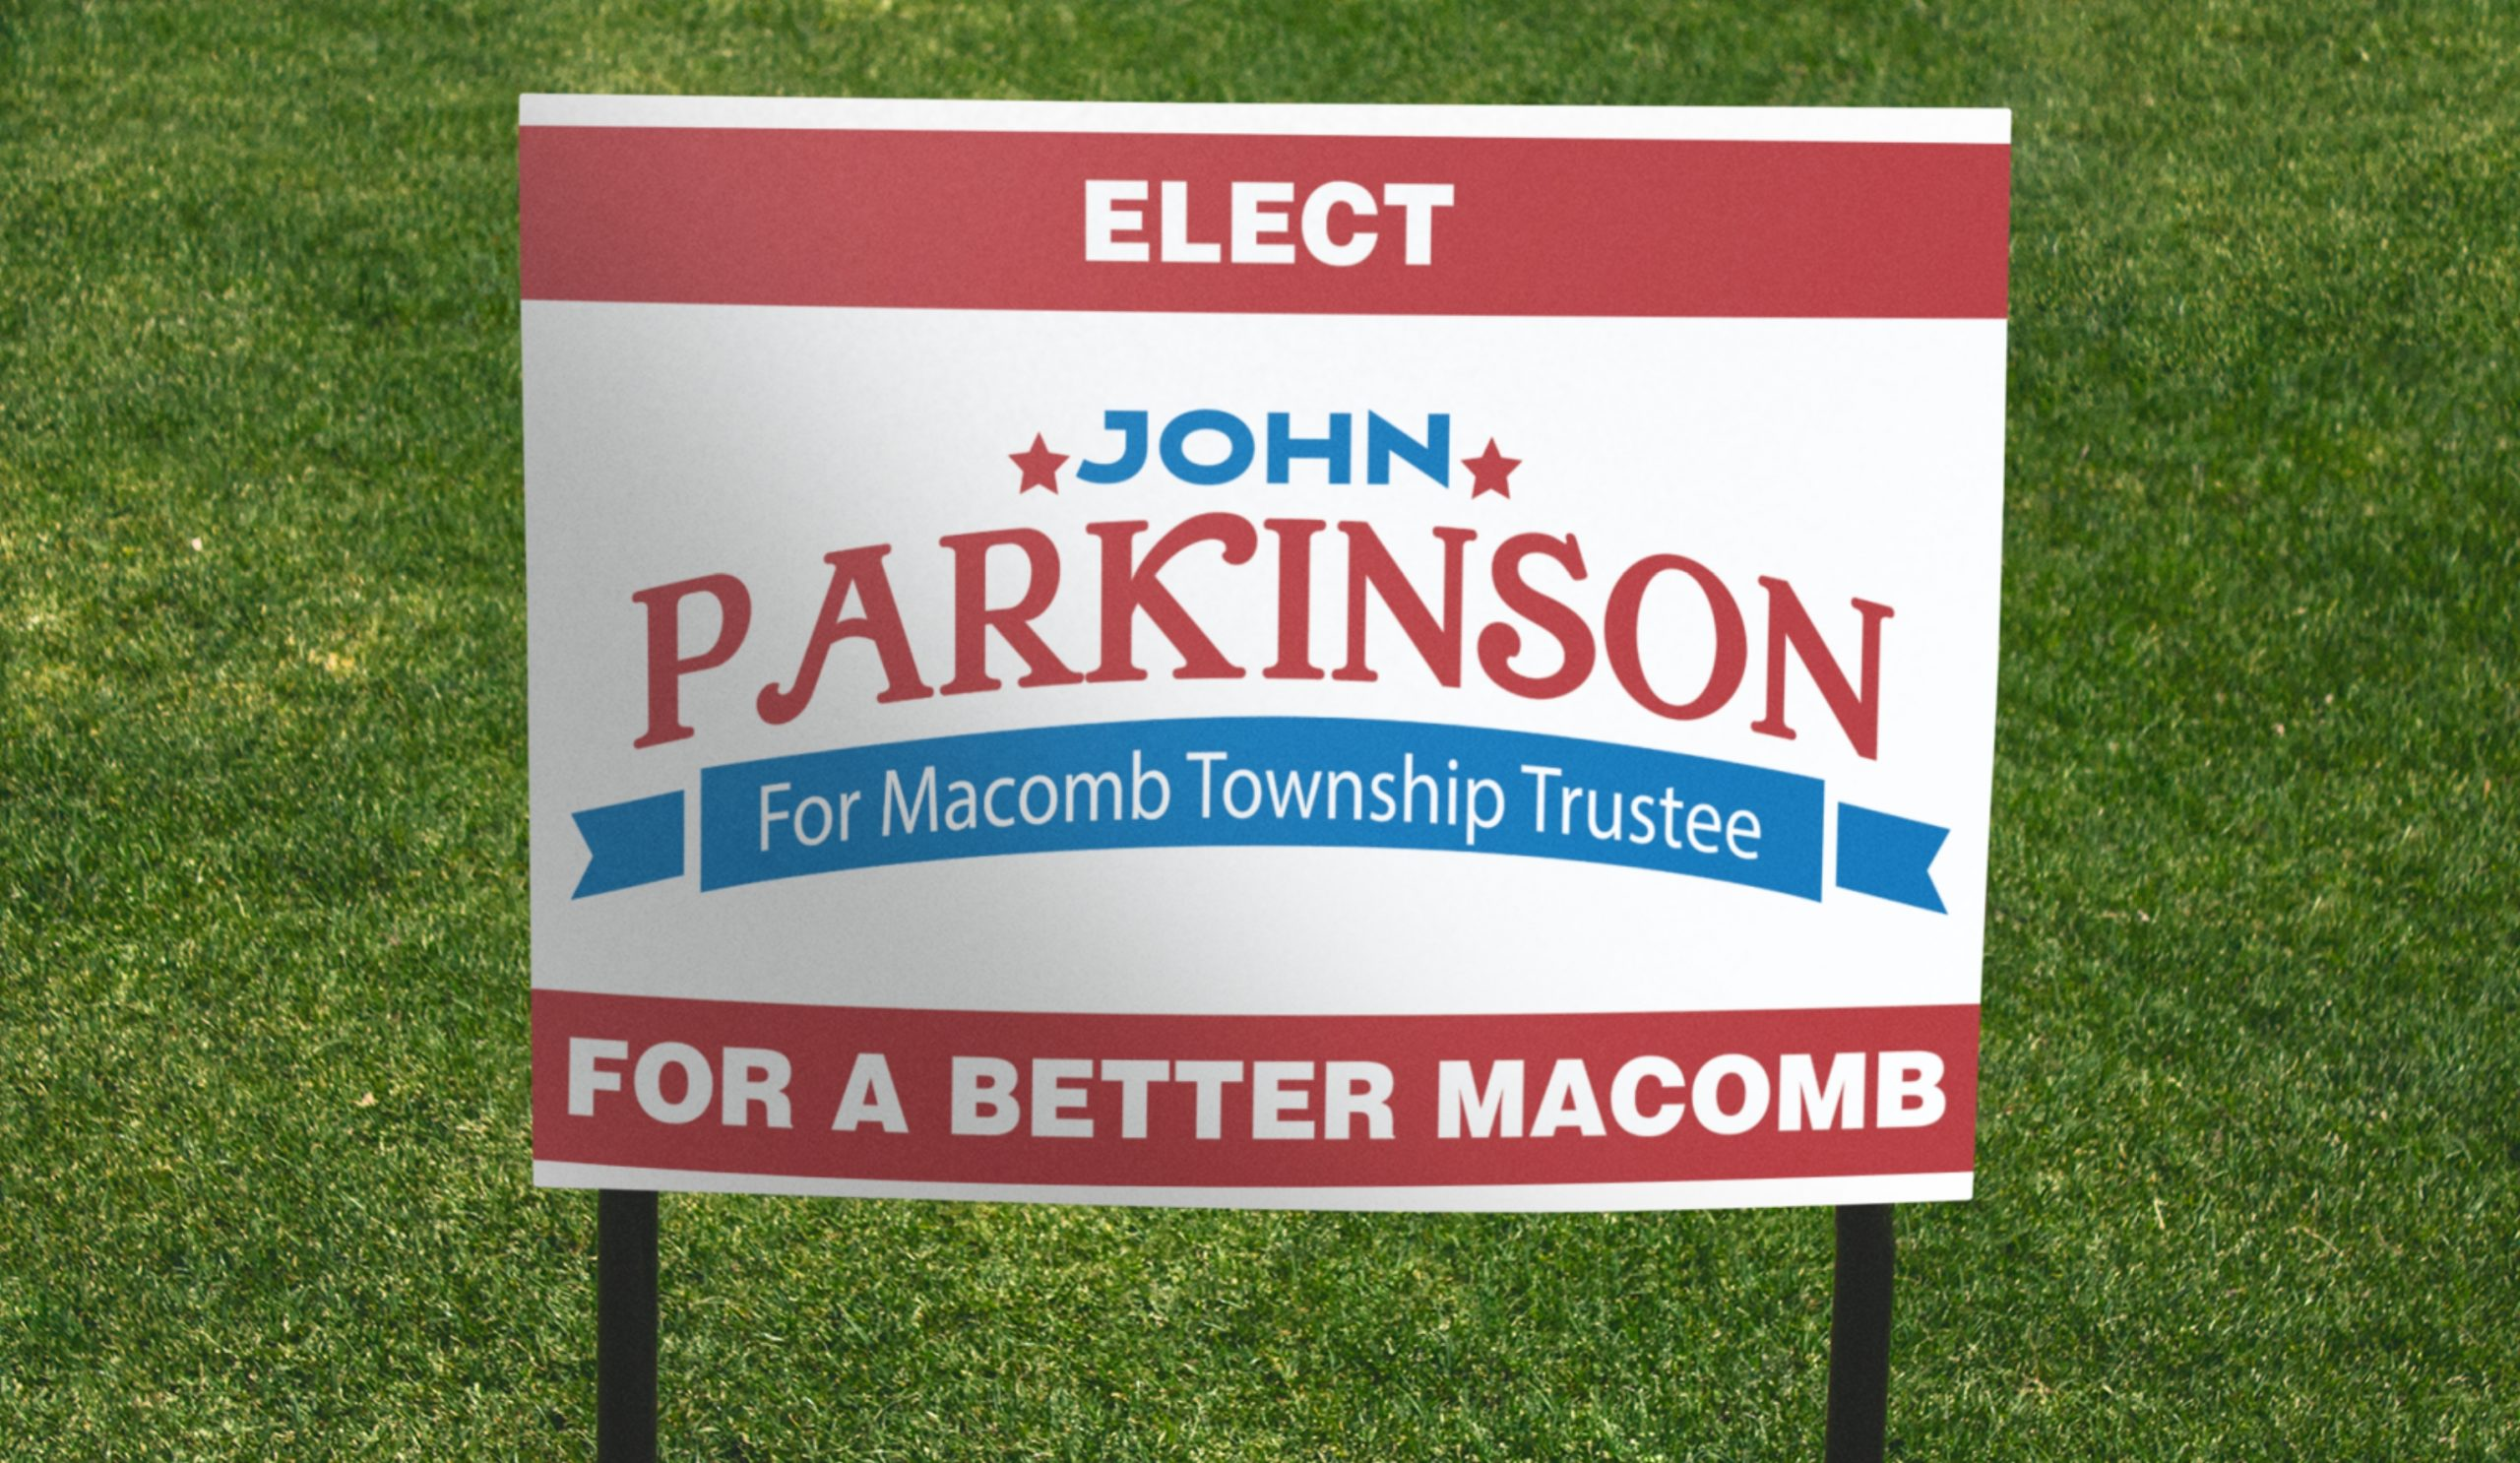 John Parkinson for Macomb Township Trustee - Yard Sign Mockup